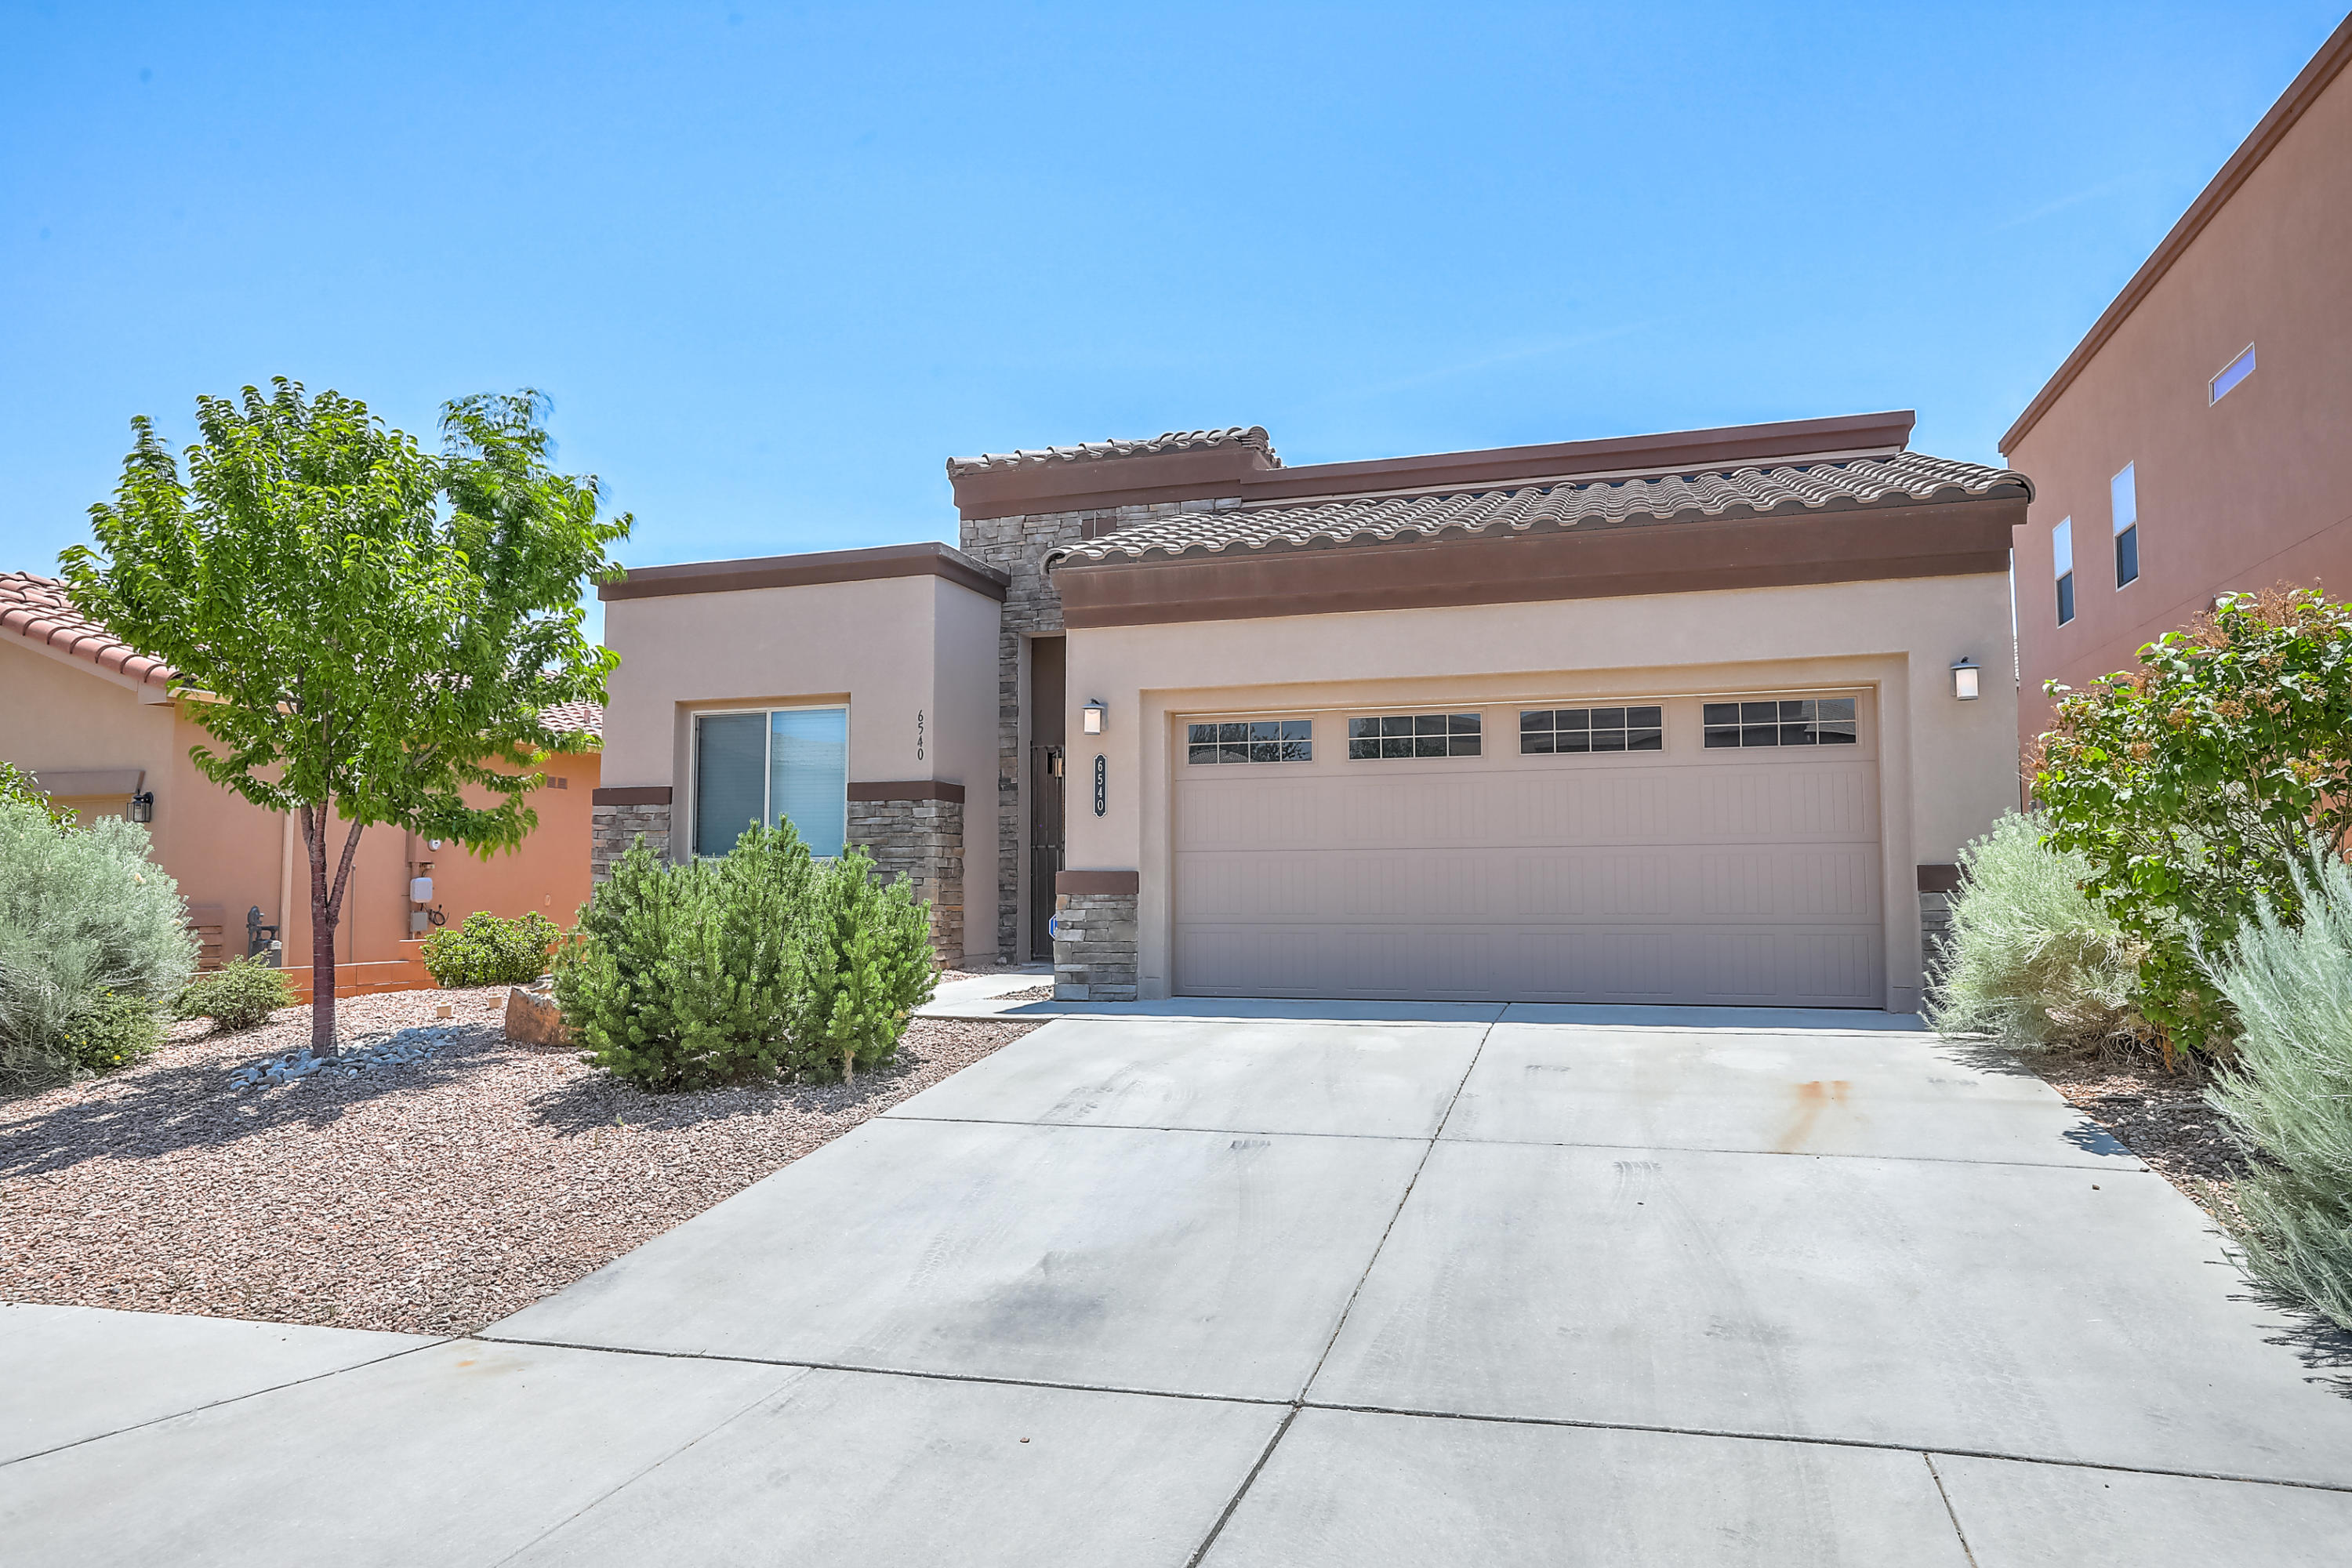 Beautiful D.R. Horton Build Green single story home located in Anasazi Ridge. Home features -  Large kitchen with island and executive cabinets/granite counter tops, large open great room, spacious master suite with huge walk in closet, an inviting backyard with covered patio and much more!